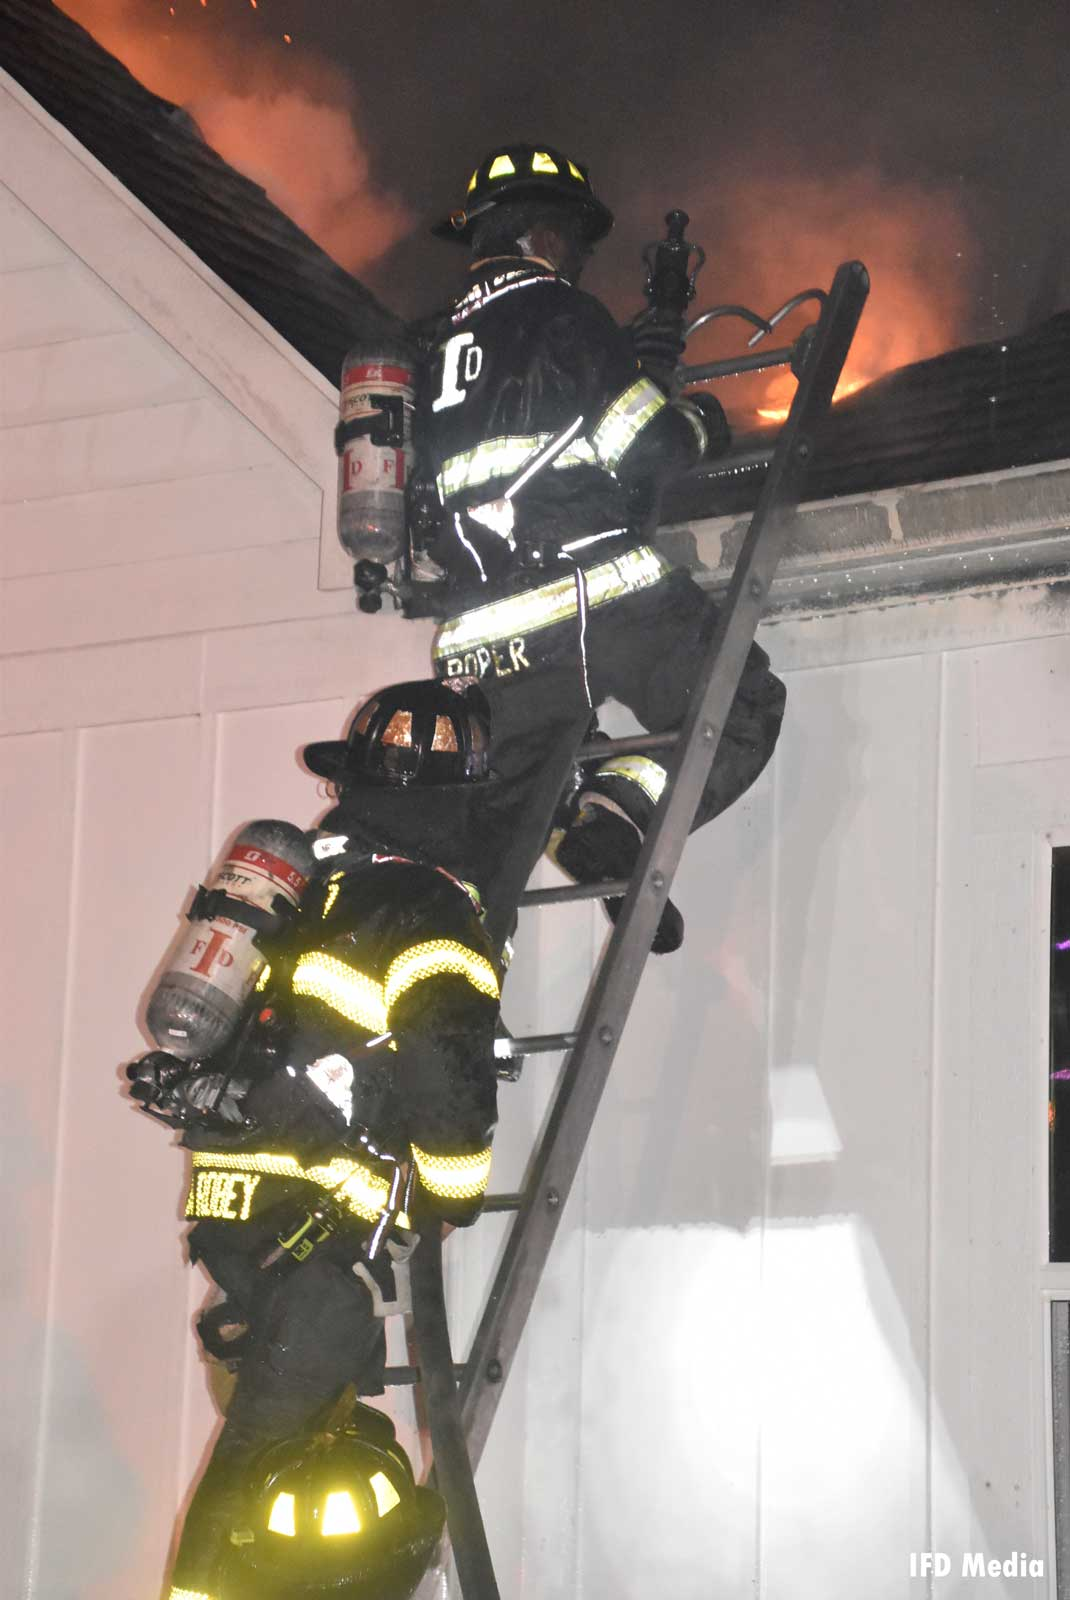 Firefighters ascend a ladder to roof of burning home